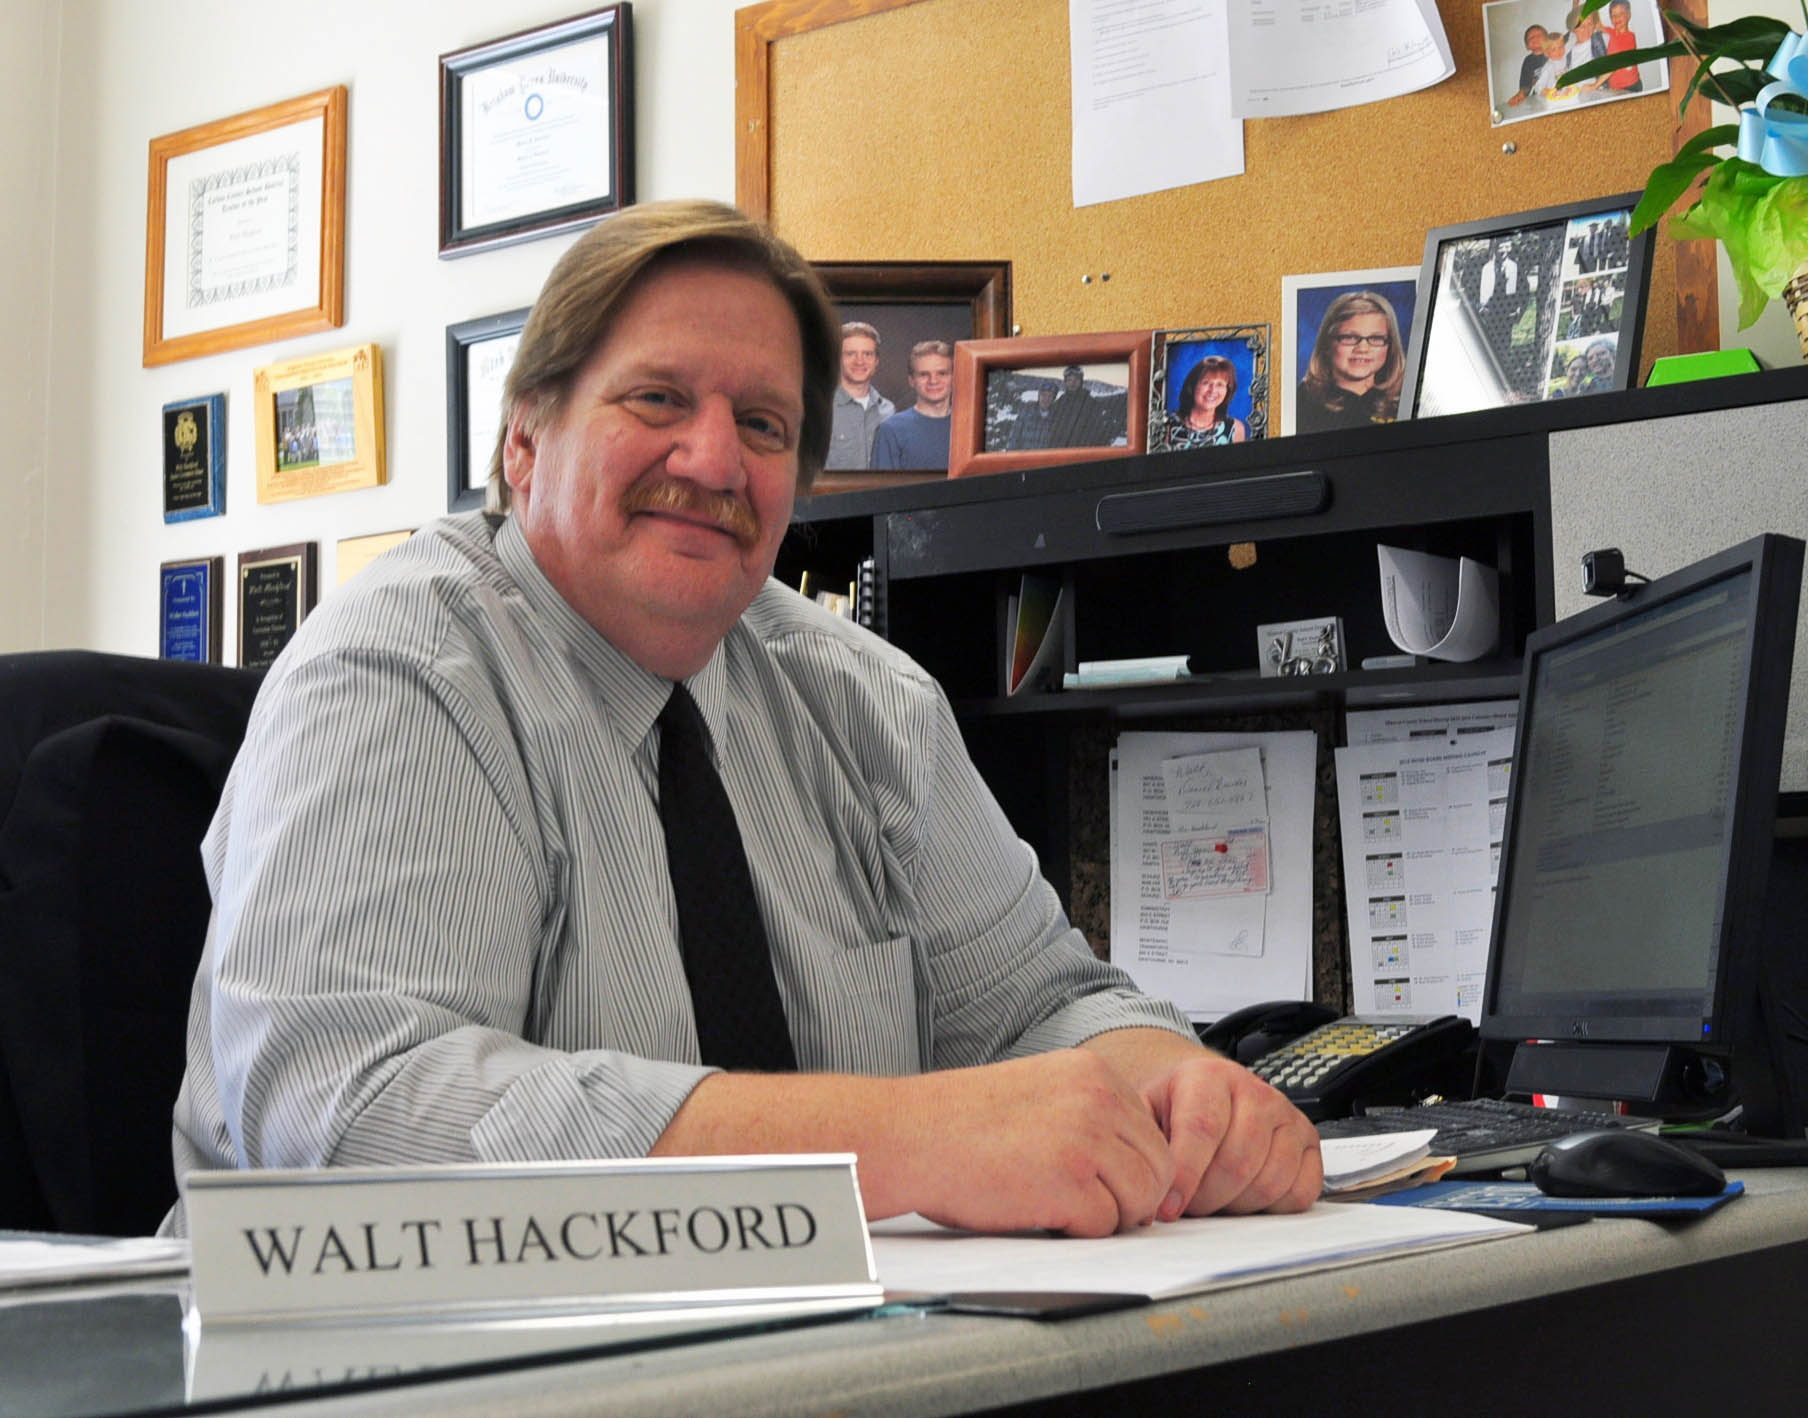 Mineral County superintendent discusses visions, goals as 2015-16 school year looms